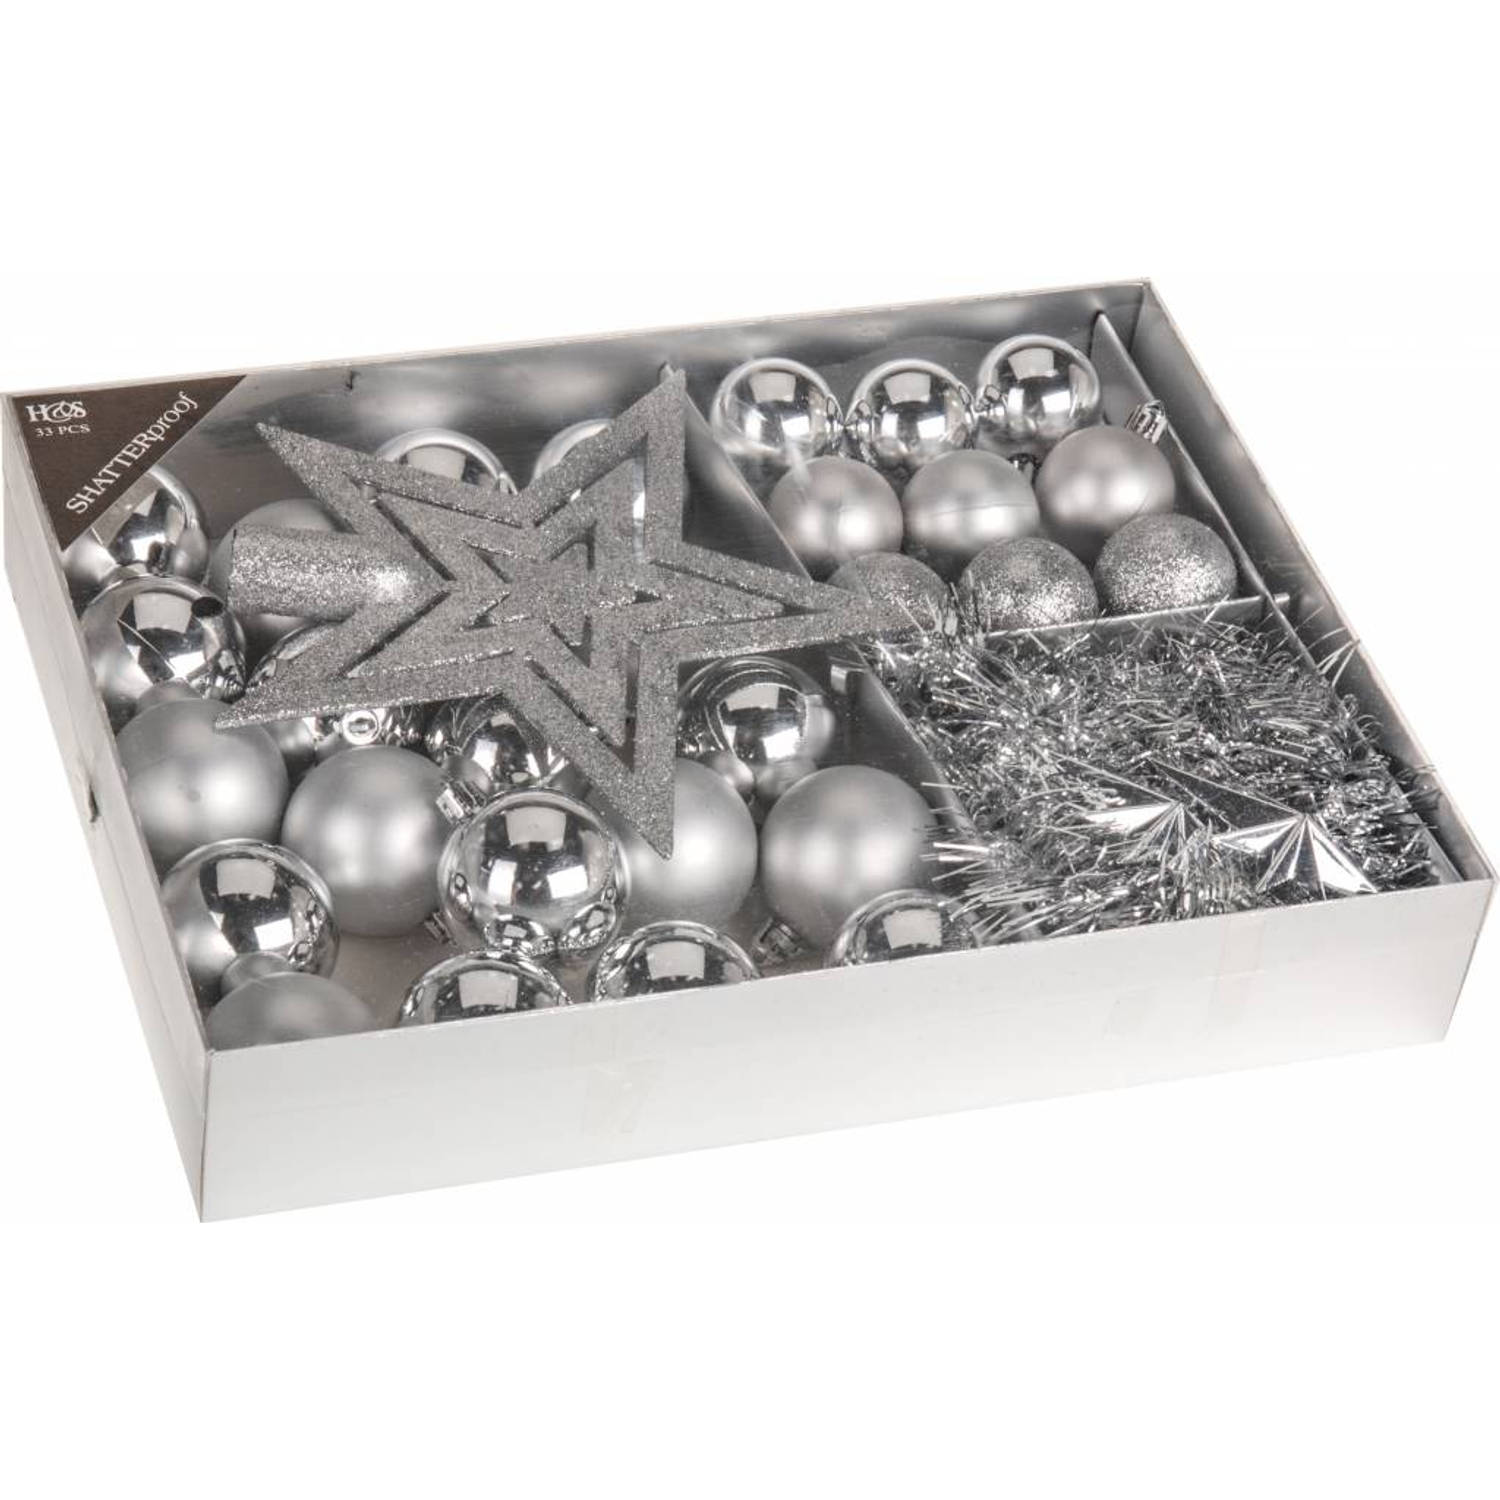 Home & styling collection 33-delige plastic kerstballen set zilver